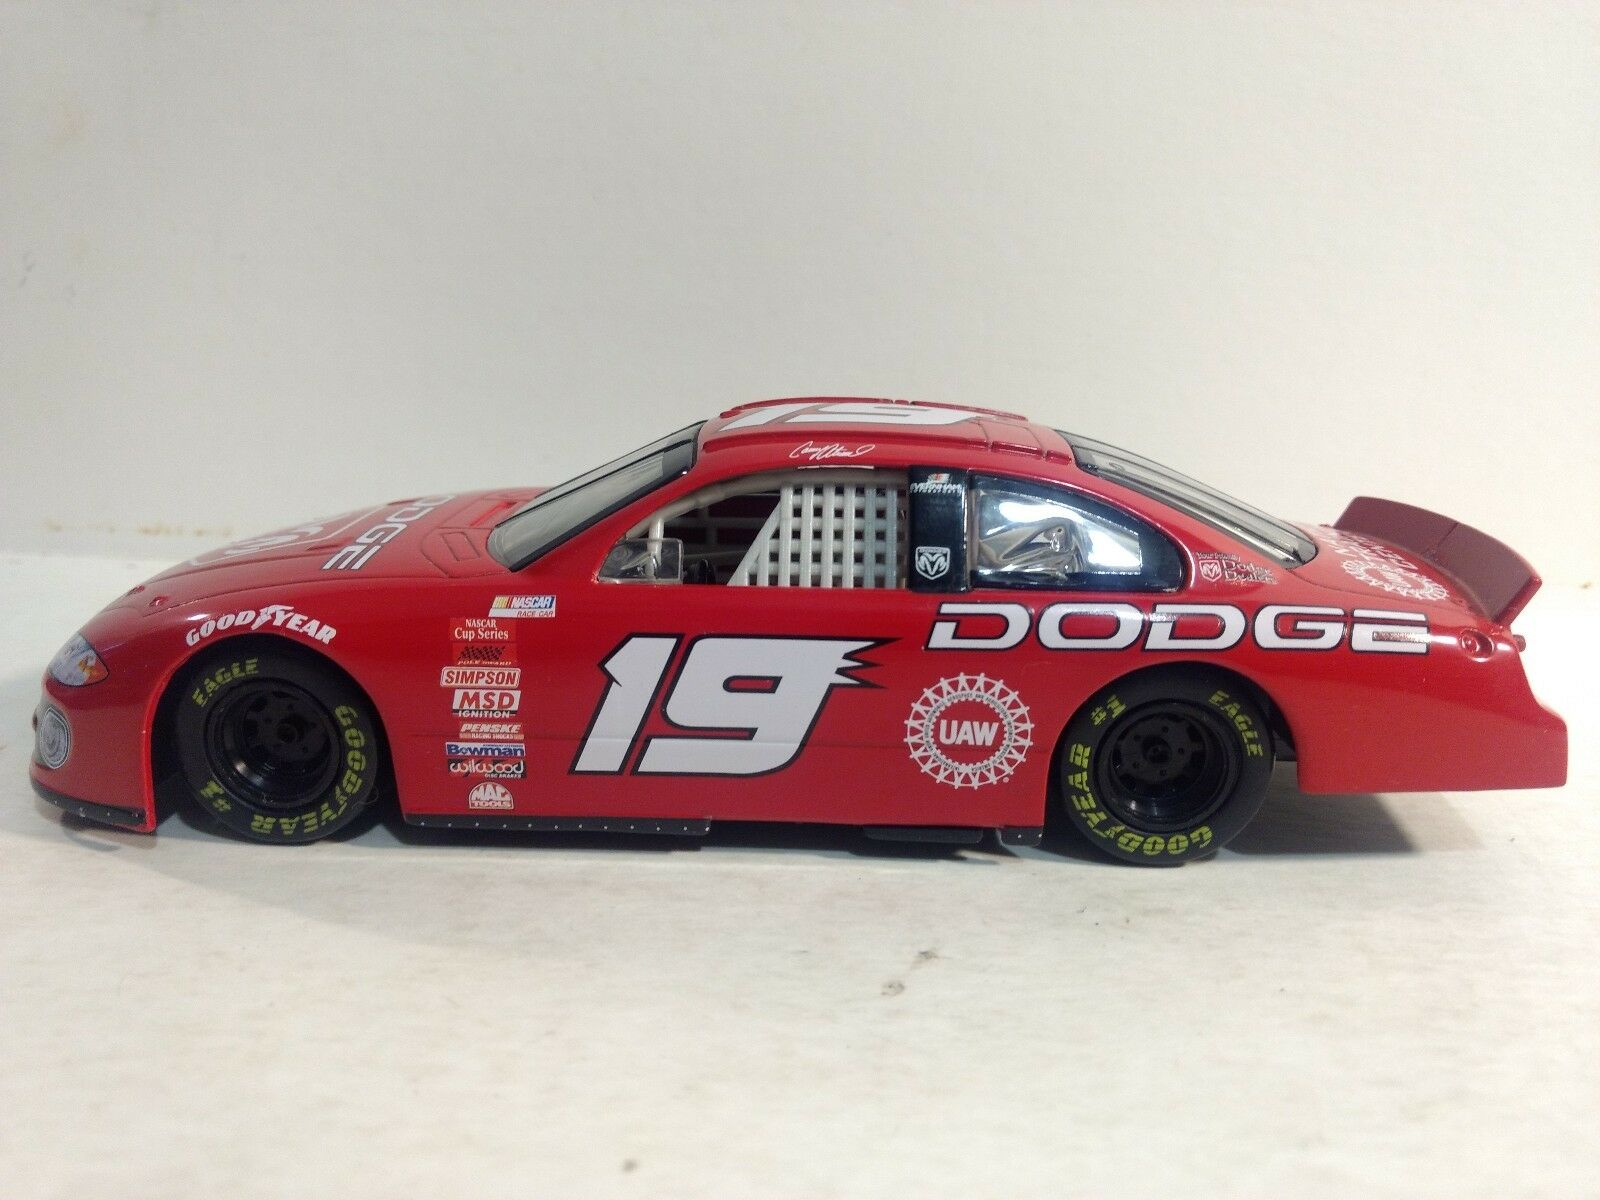 Nascar Casey Atwood UAW Dodge In A Red 1 24 Scale Diecast Hasbro 2001 dc2047